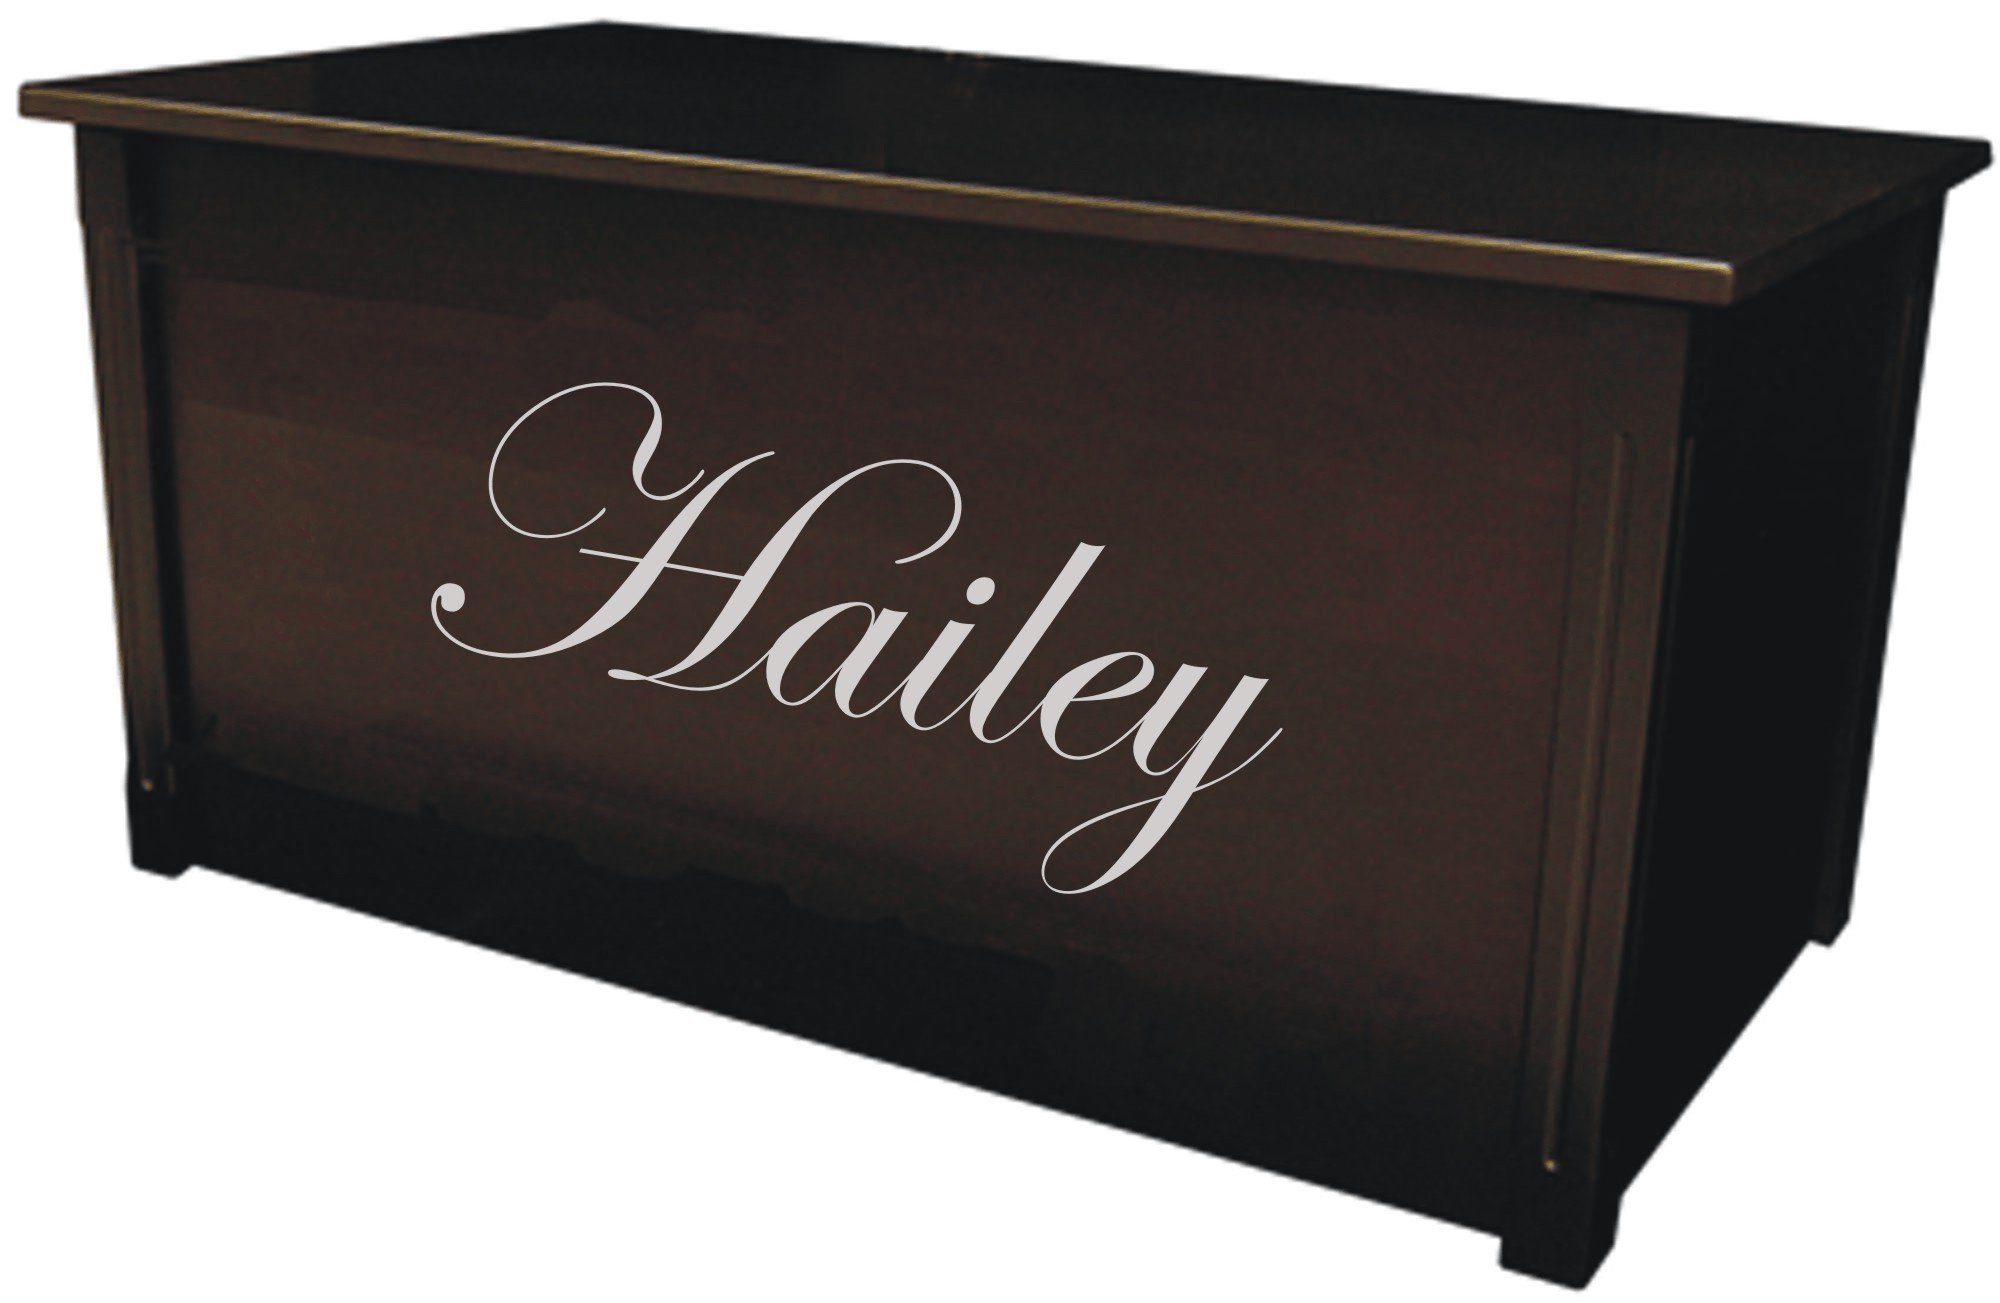 Wood Toy Box, Large Espresso Toy Chest, Personalized Edwardian Font, Custom Options (Standard Base - Silver Lettering)